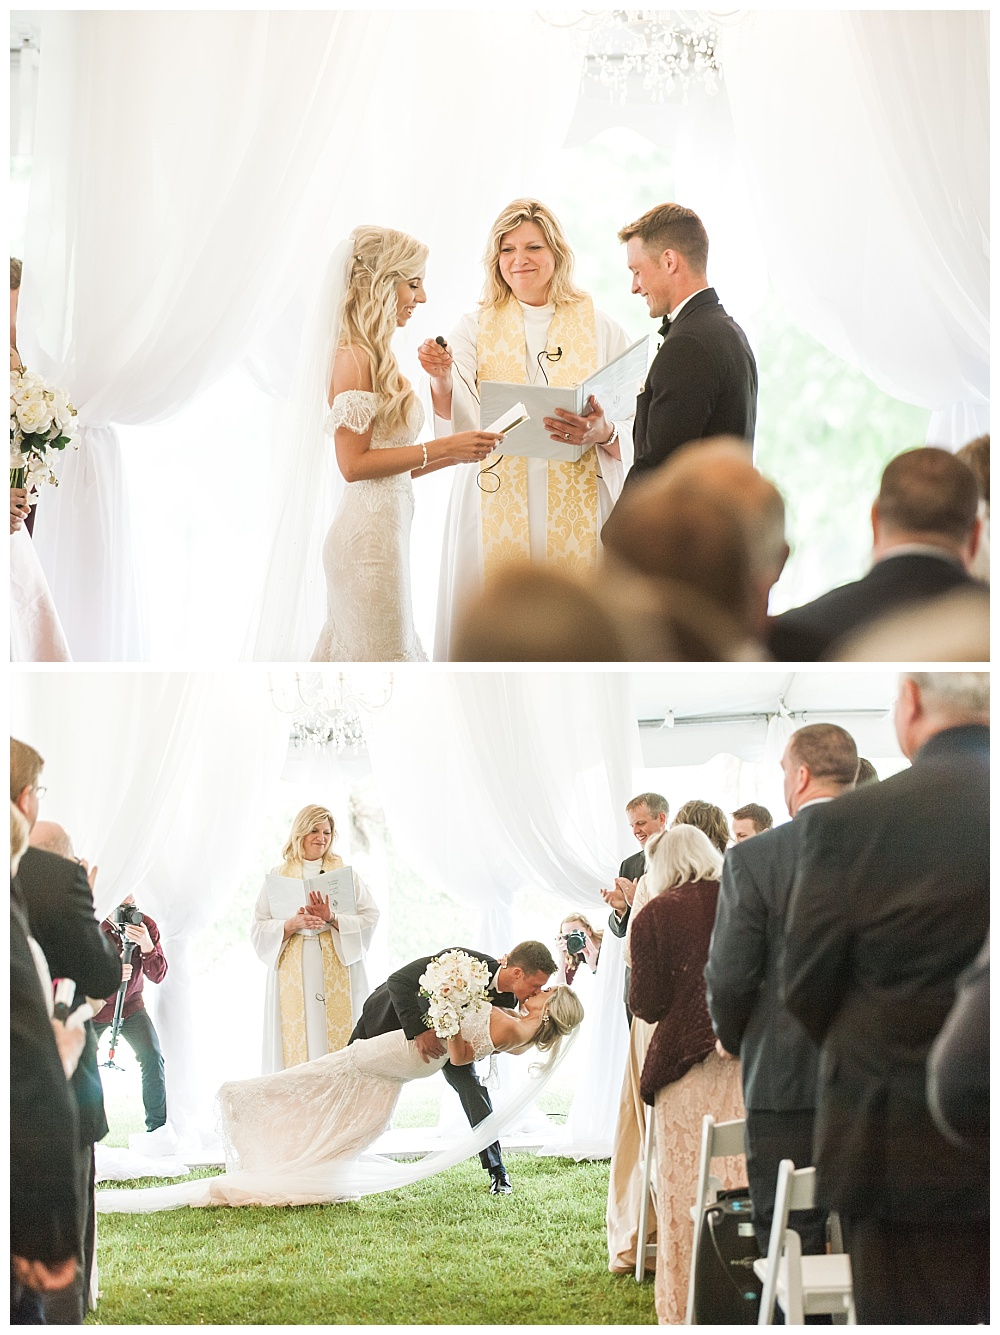 Stephanie Marie Photography TPC Deere Run Quad Cities Iowa City Wedding Photographer Ben Erin Dittmer_0049.jpg